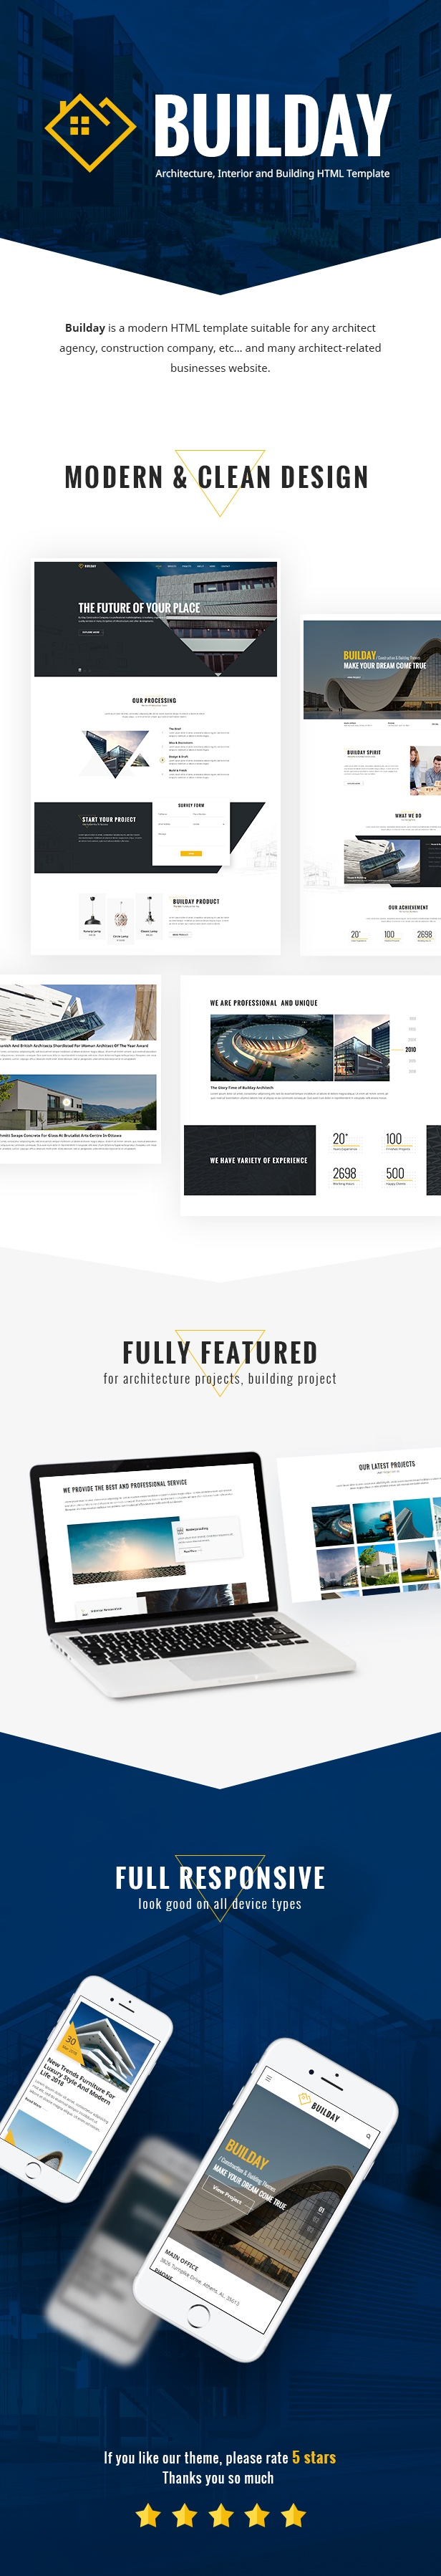 Builday - Modern Architech, Interior And Building HTML Template - 1